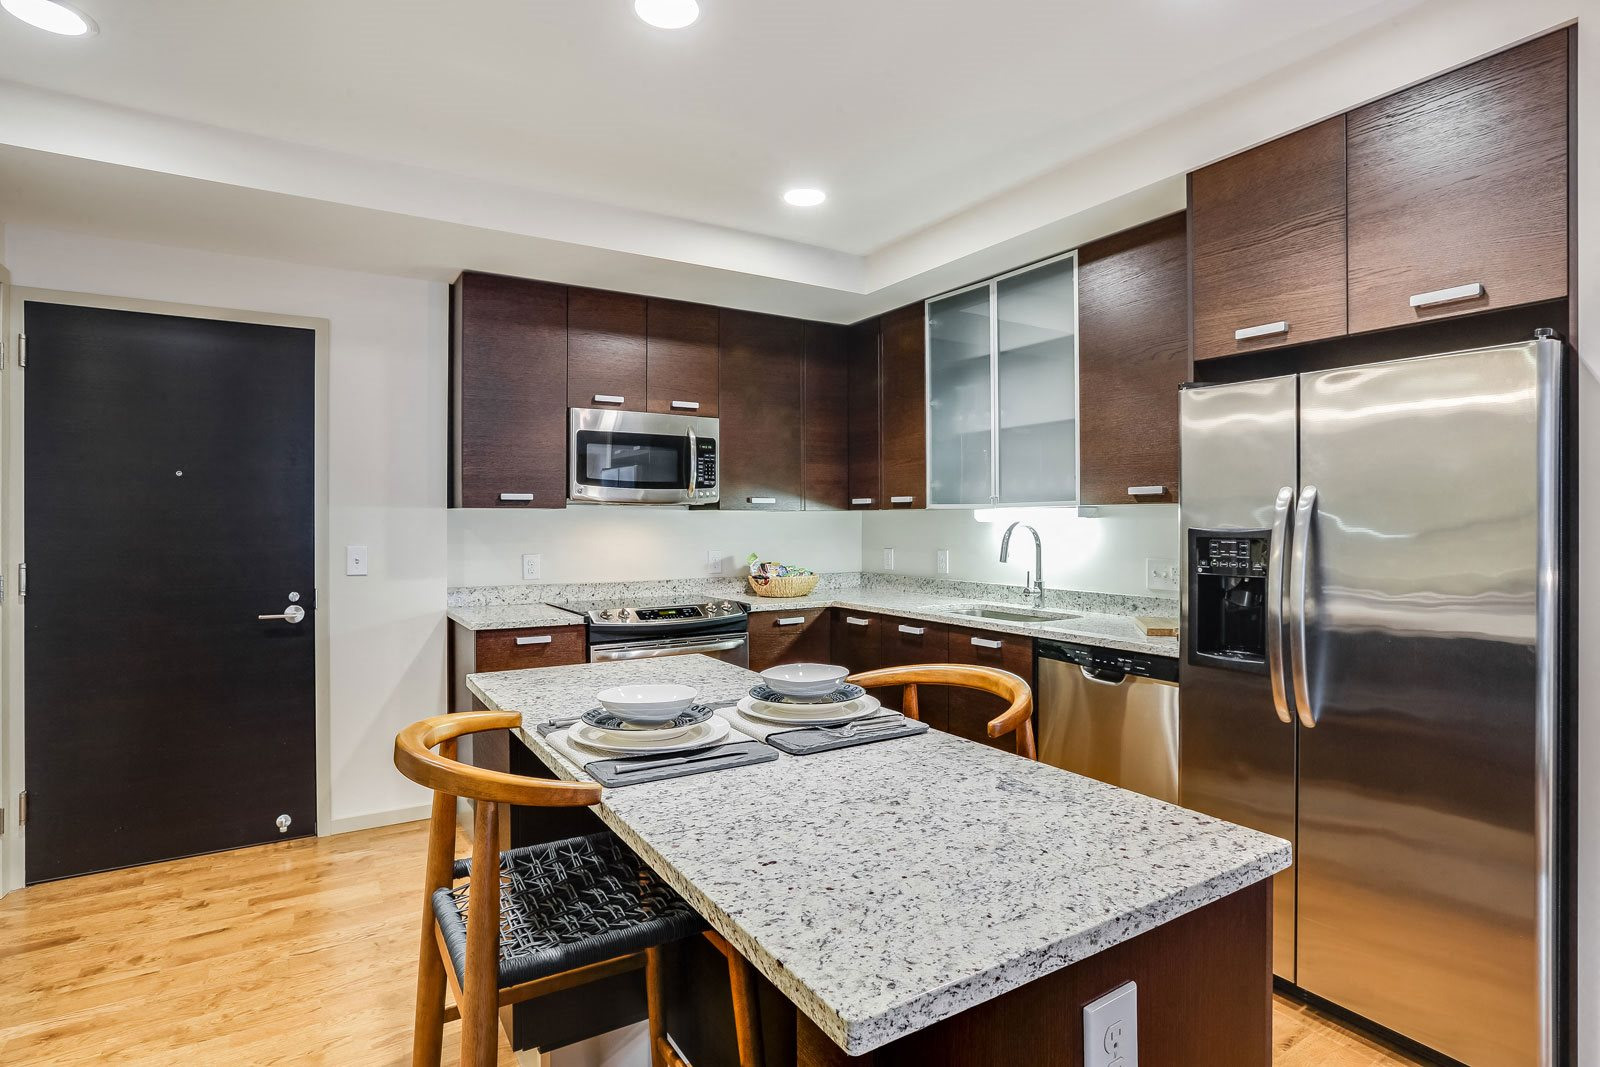 Modern Kitchens with stainless Steel Appliances at The Victor by Windsor, 02114, MA